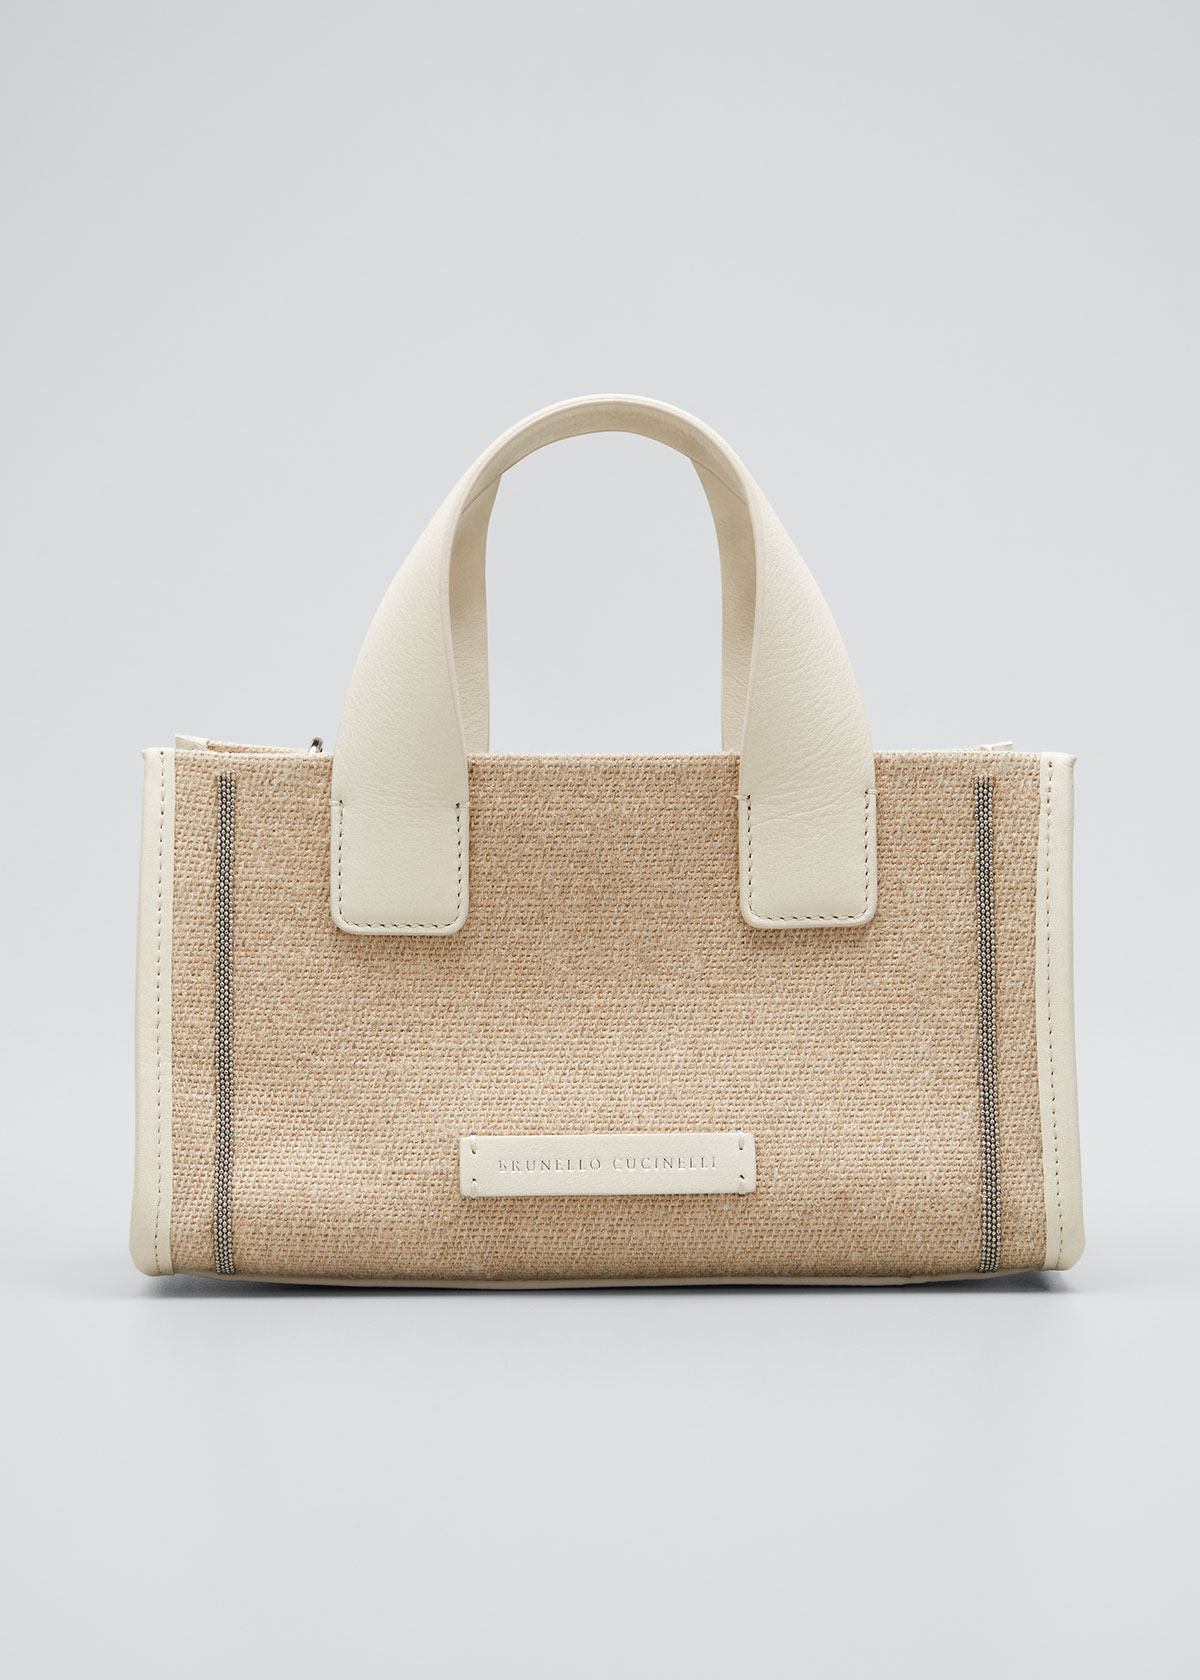 Brunello Cucinelli Leathers MICRO EAST-WEST CANVAS CROSSBODY TOTE BAG